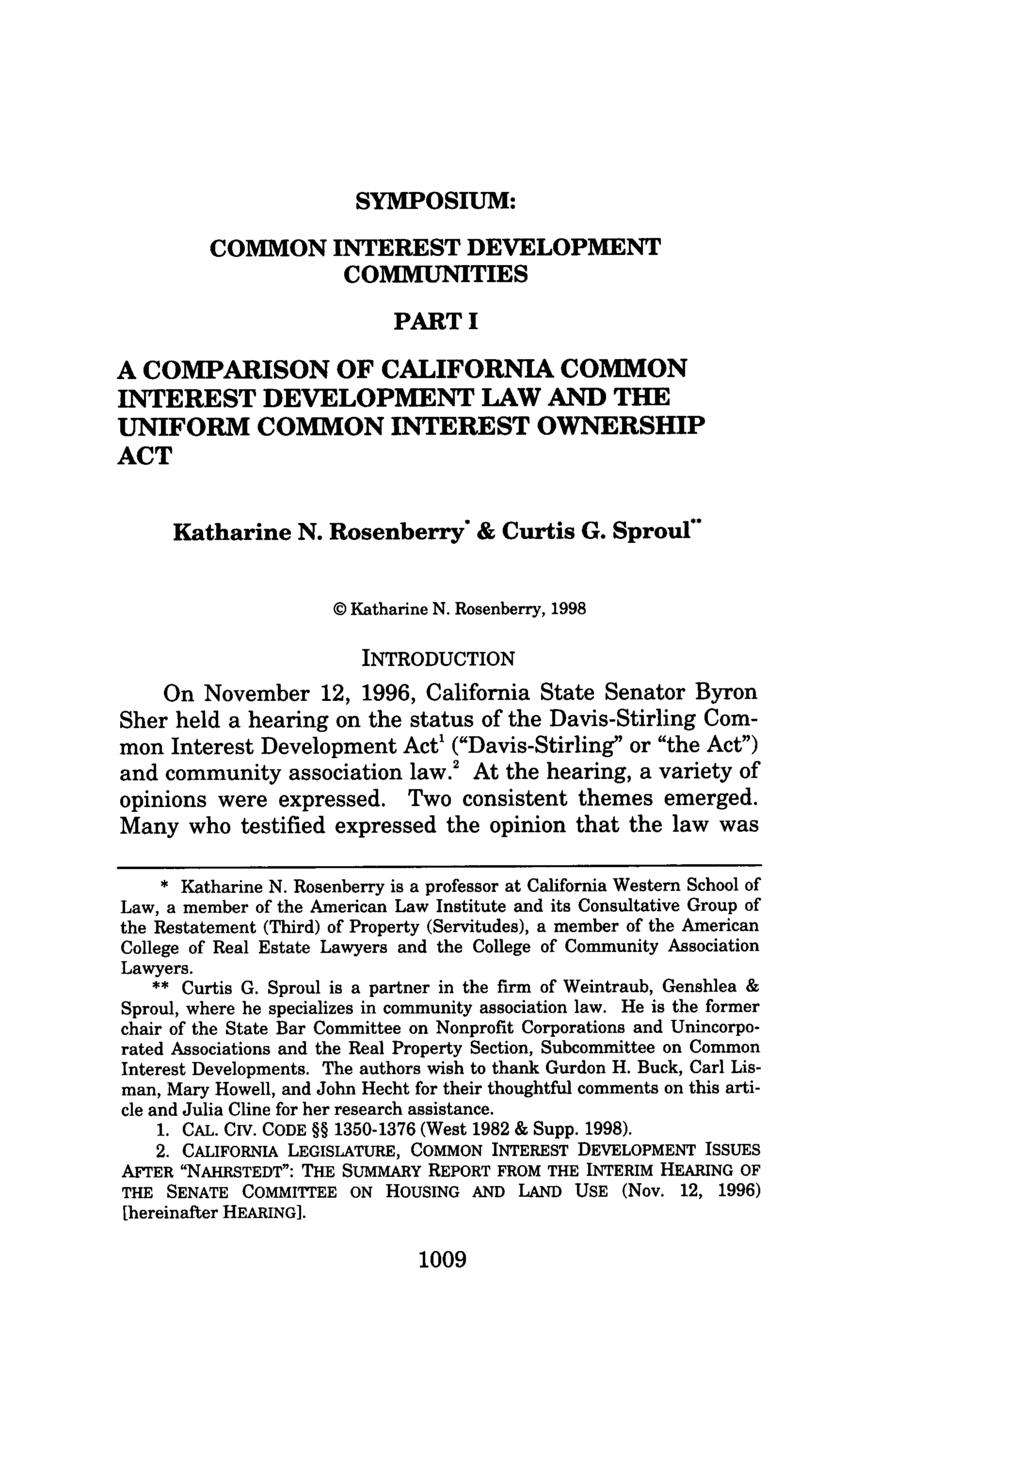 SYMPOSIUM: COMMON INTEREST DEVELOPMENT COMMUNITIES PART I A COMPARISON OF CALIFORNIA COMMON INTEREST DEVELOPMENT LAW AND THE UNIFORM COMMON INTEREST OWNERSHIP ACT Katharine N. Rosenberry* & Curtis G.